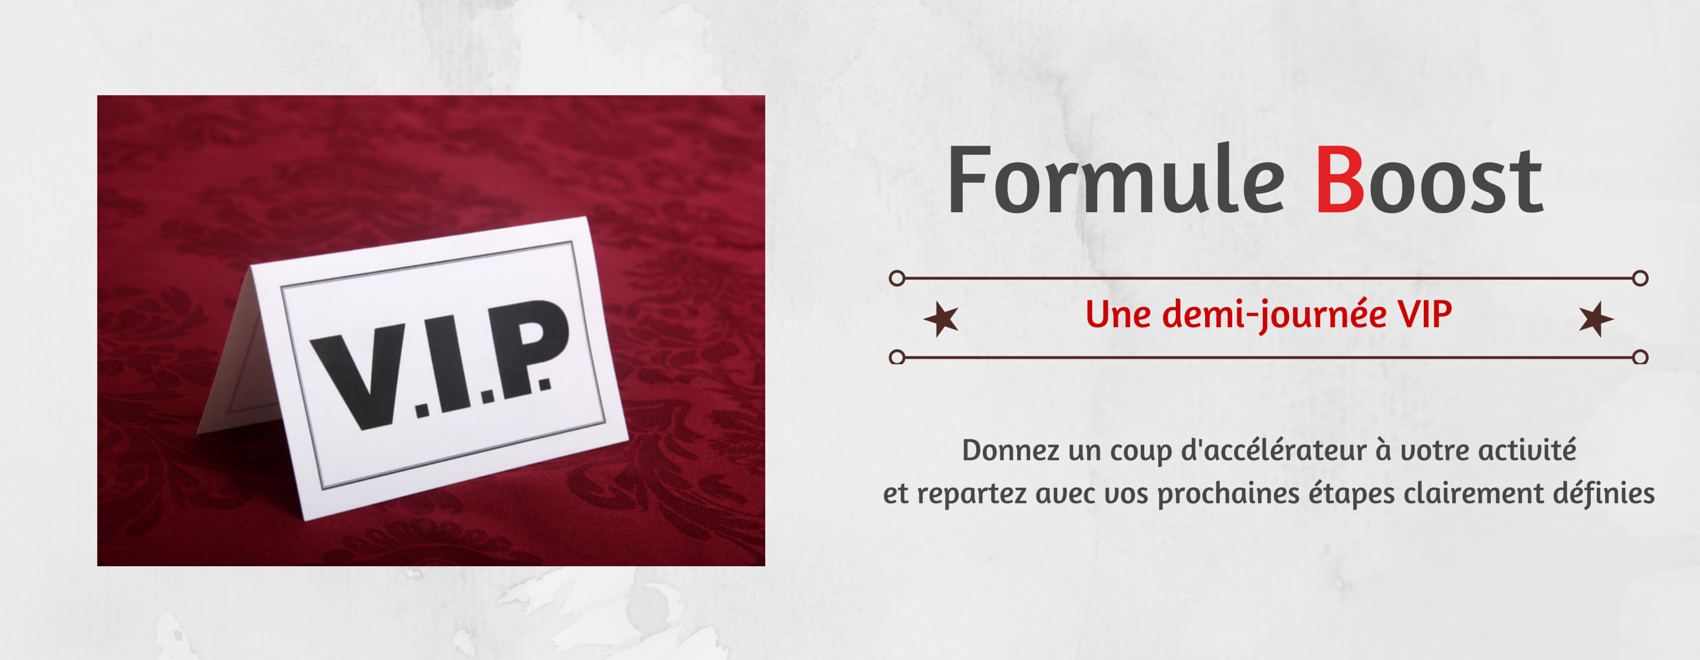 formation positionnement marketing